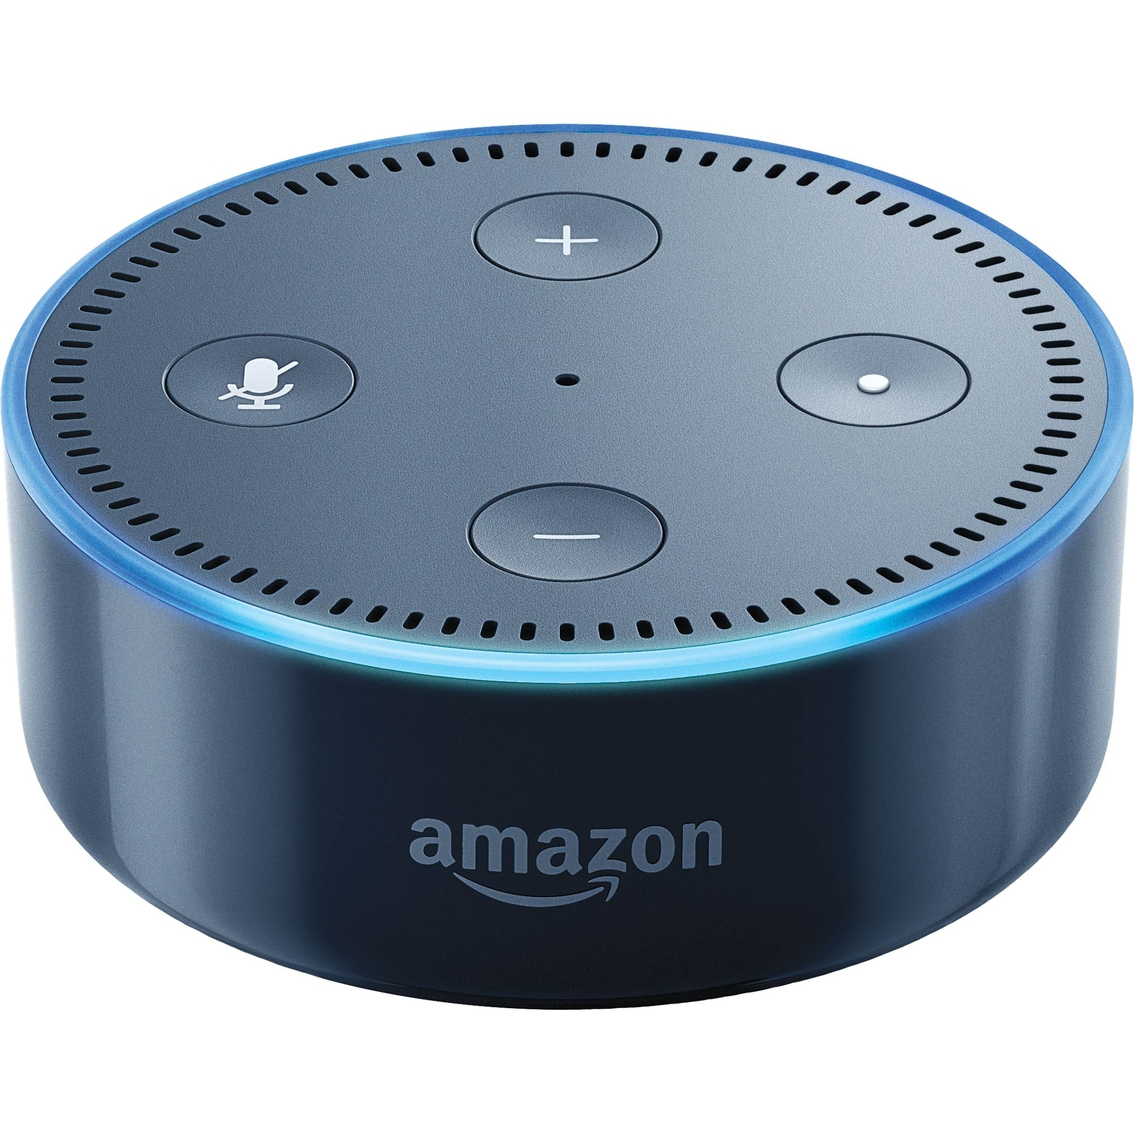 Echo Dot Installation Amazon Echo Dot Portable Speakers Electronics Shop The Exchange